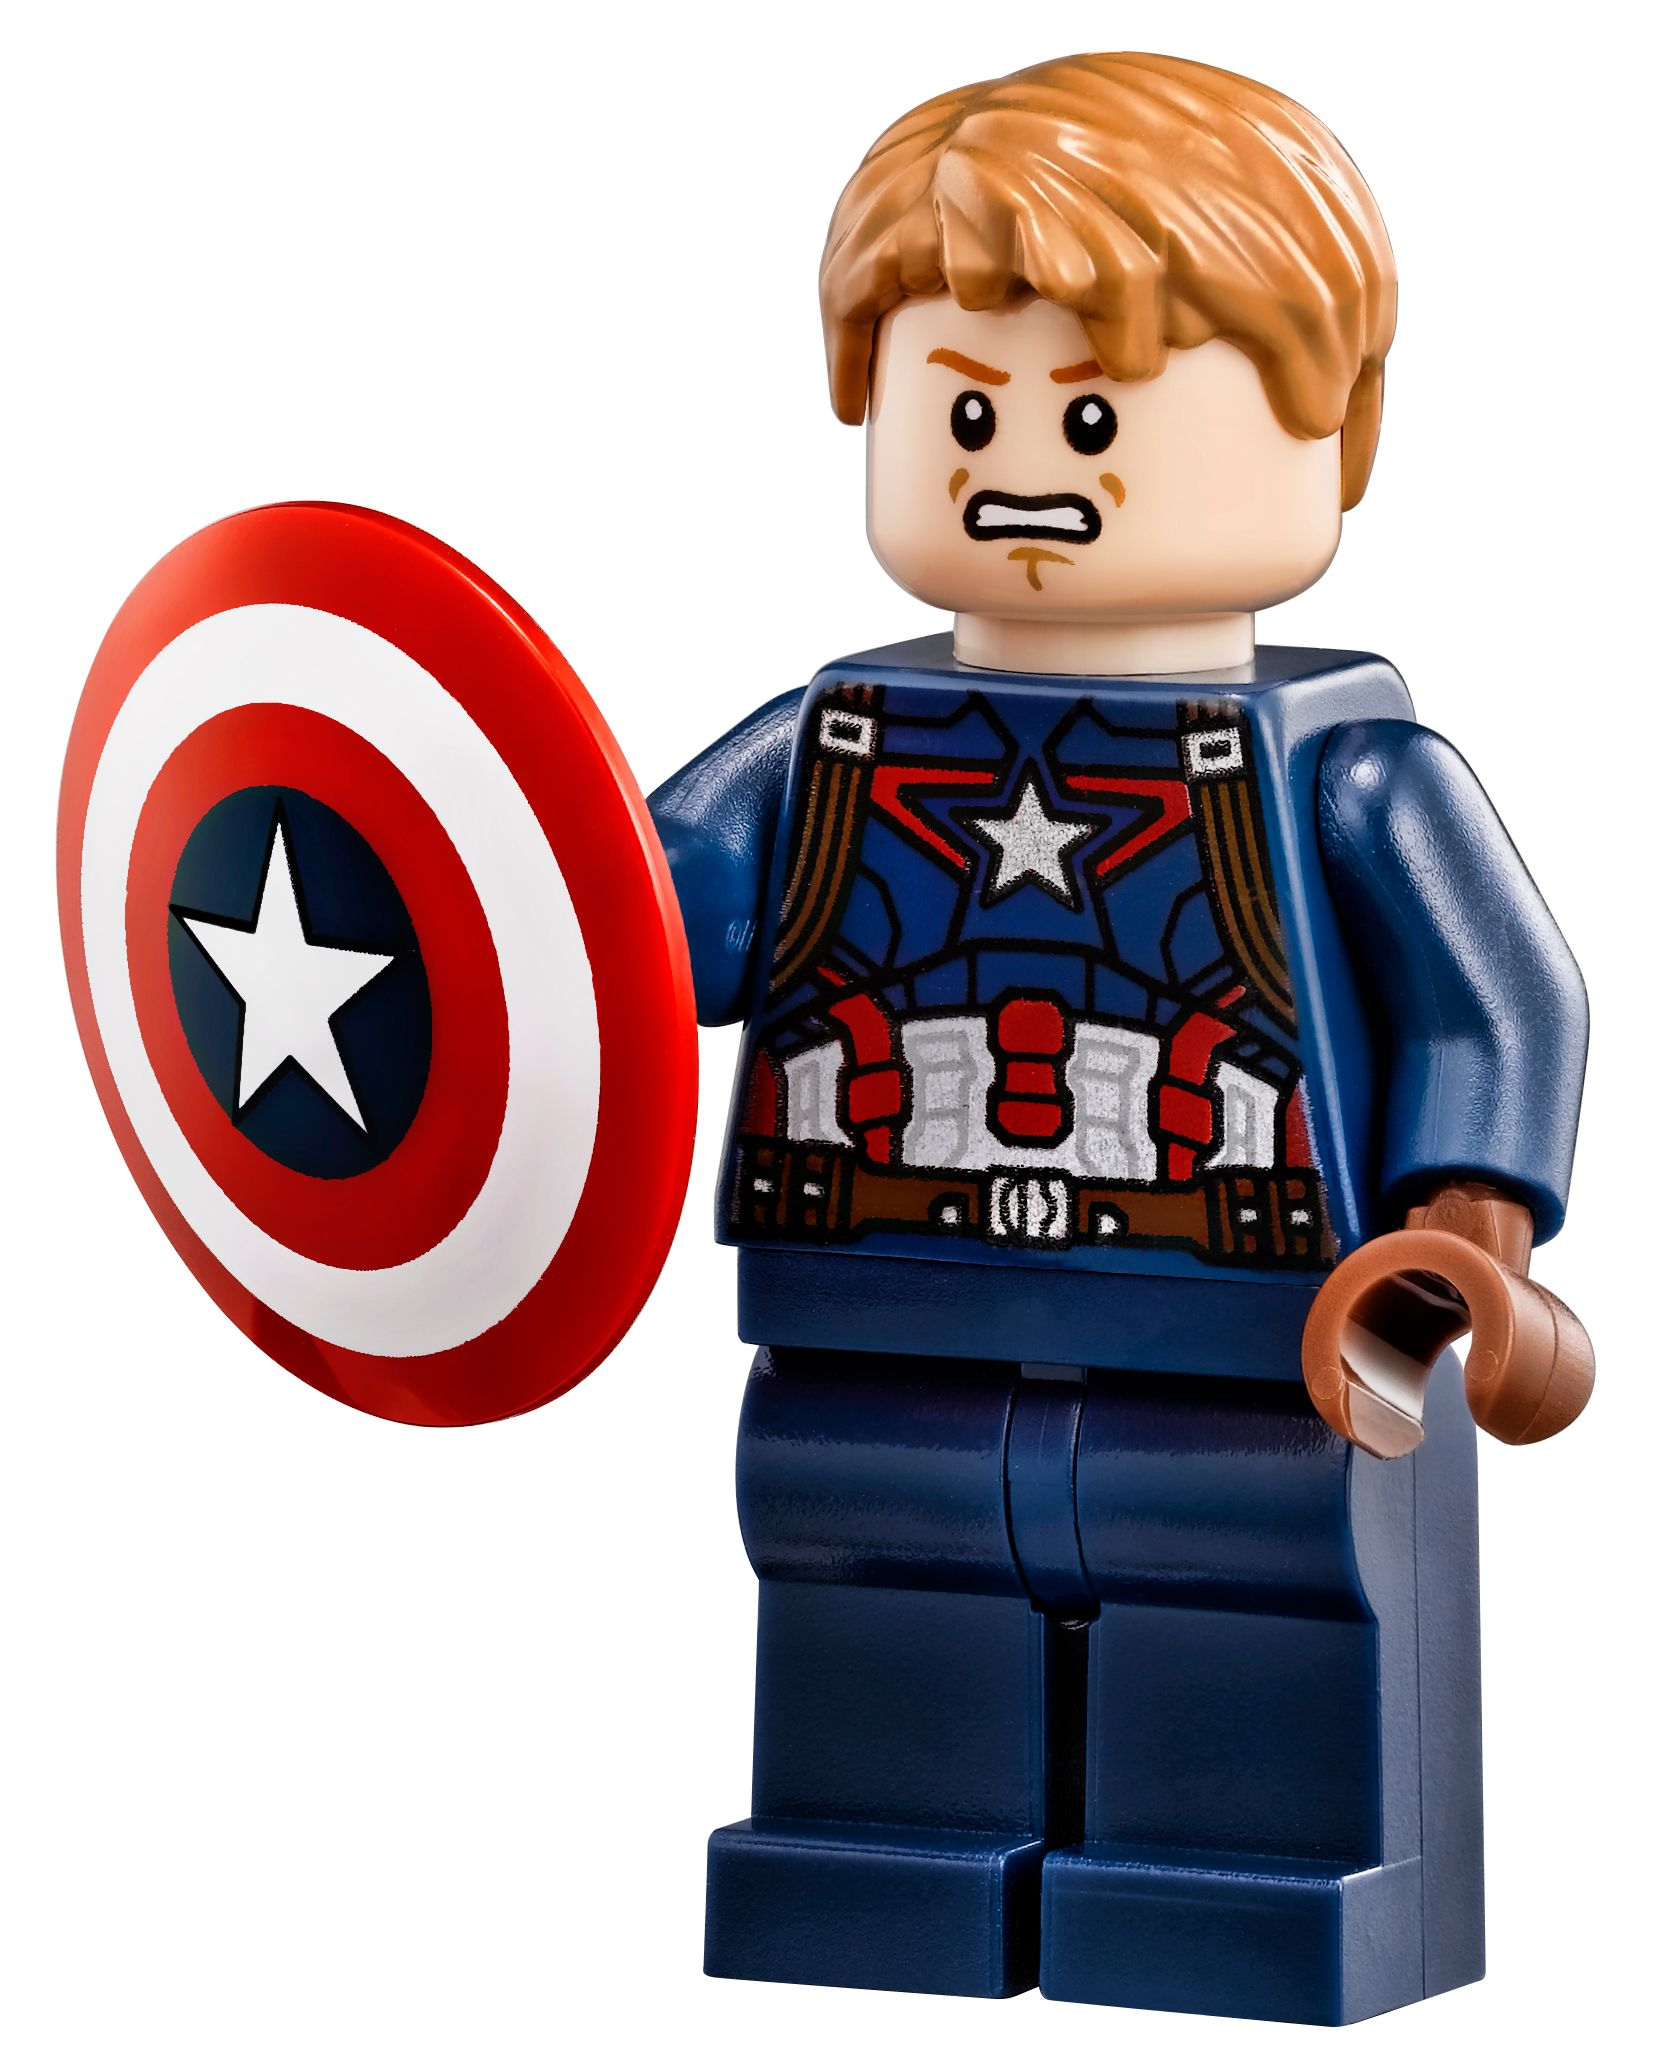 Lego Helicarrier Revealed: First Images Of Avengers S.H.I